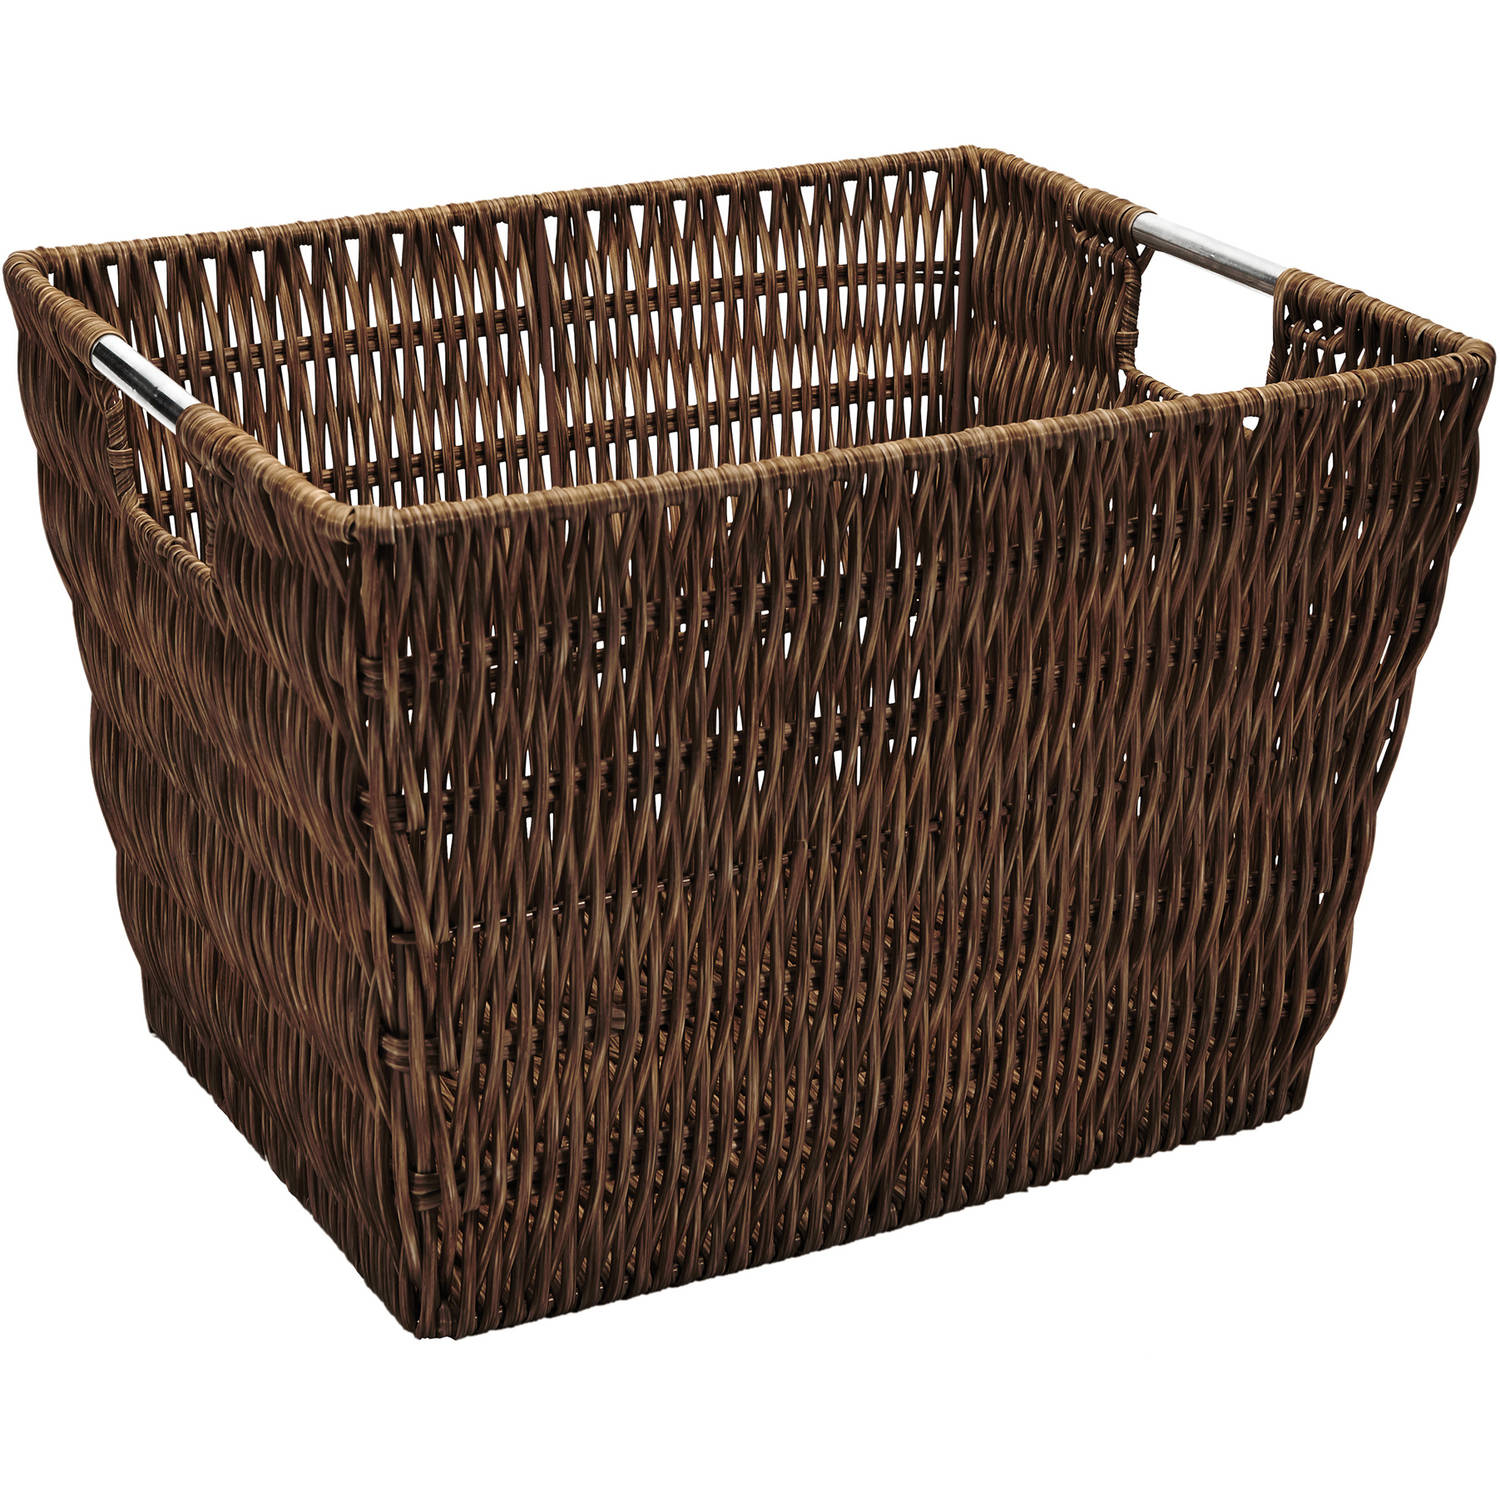 Simplify Medium Faux Rattan Vertical Weave Tote